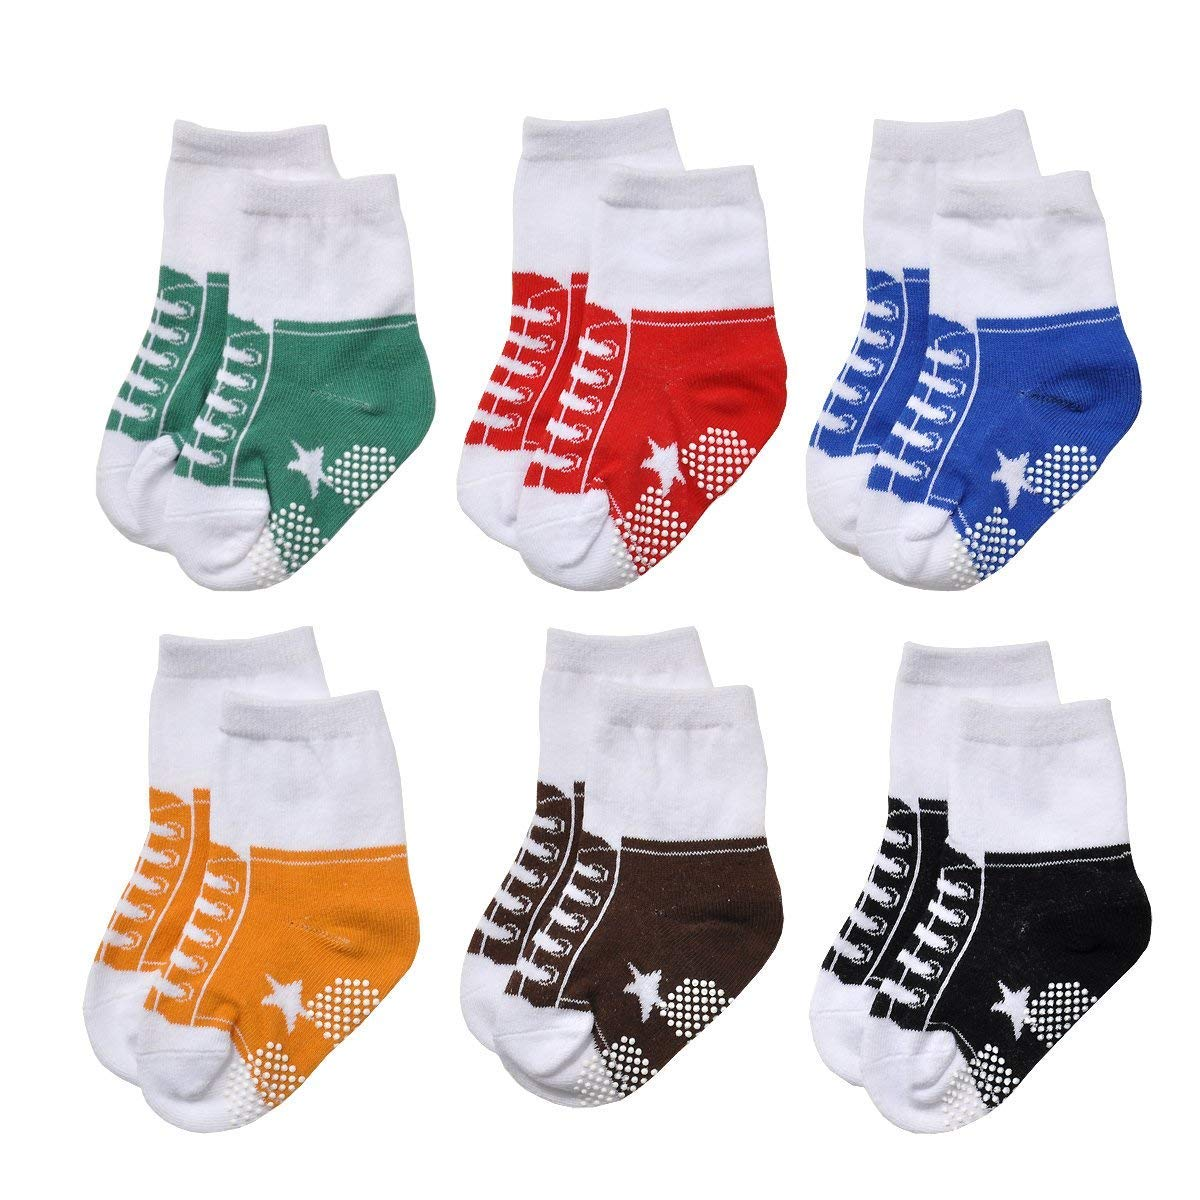 NovForth 12 Pairs Baby's Boy Socks Anti-slip Cotton Socks 12-36 Months Multiple Color Socks